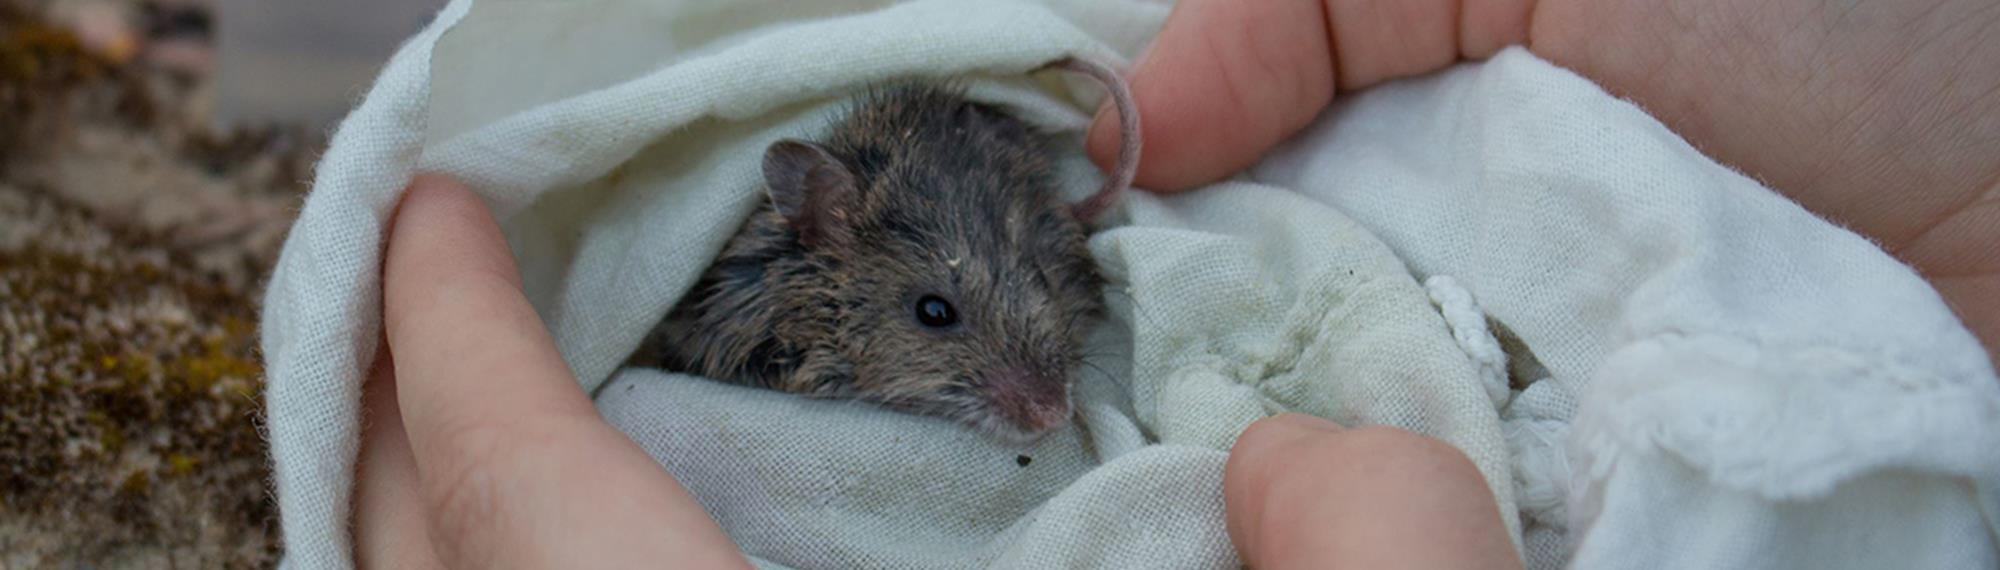 New Holland Mouse getting a health check wrapped in blanket with just its head peaking out.